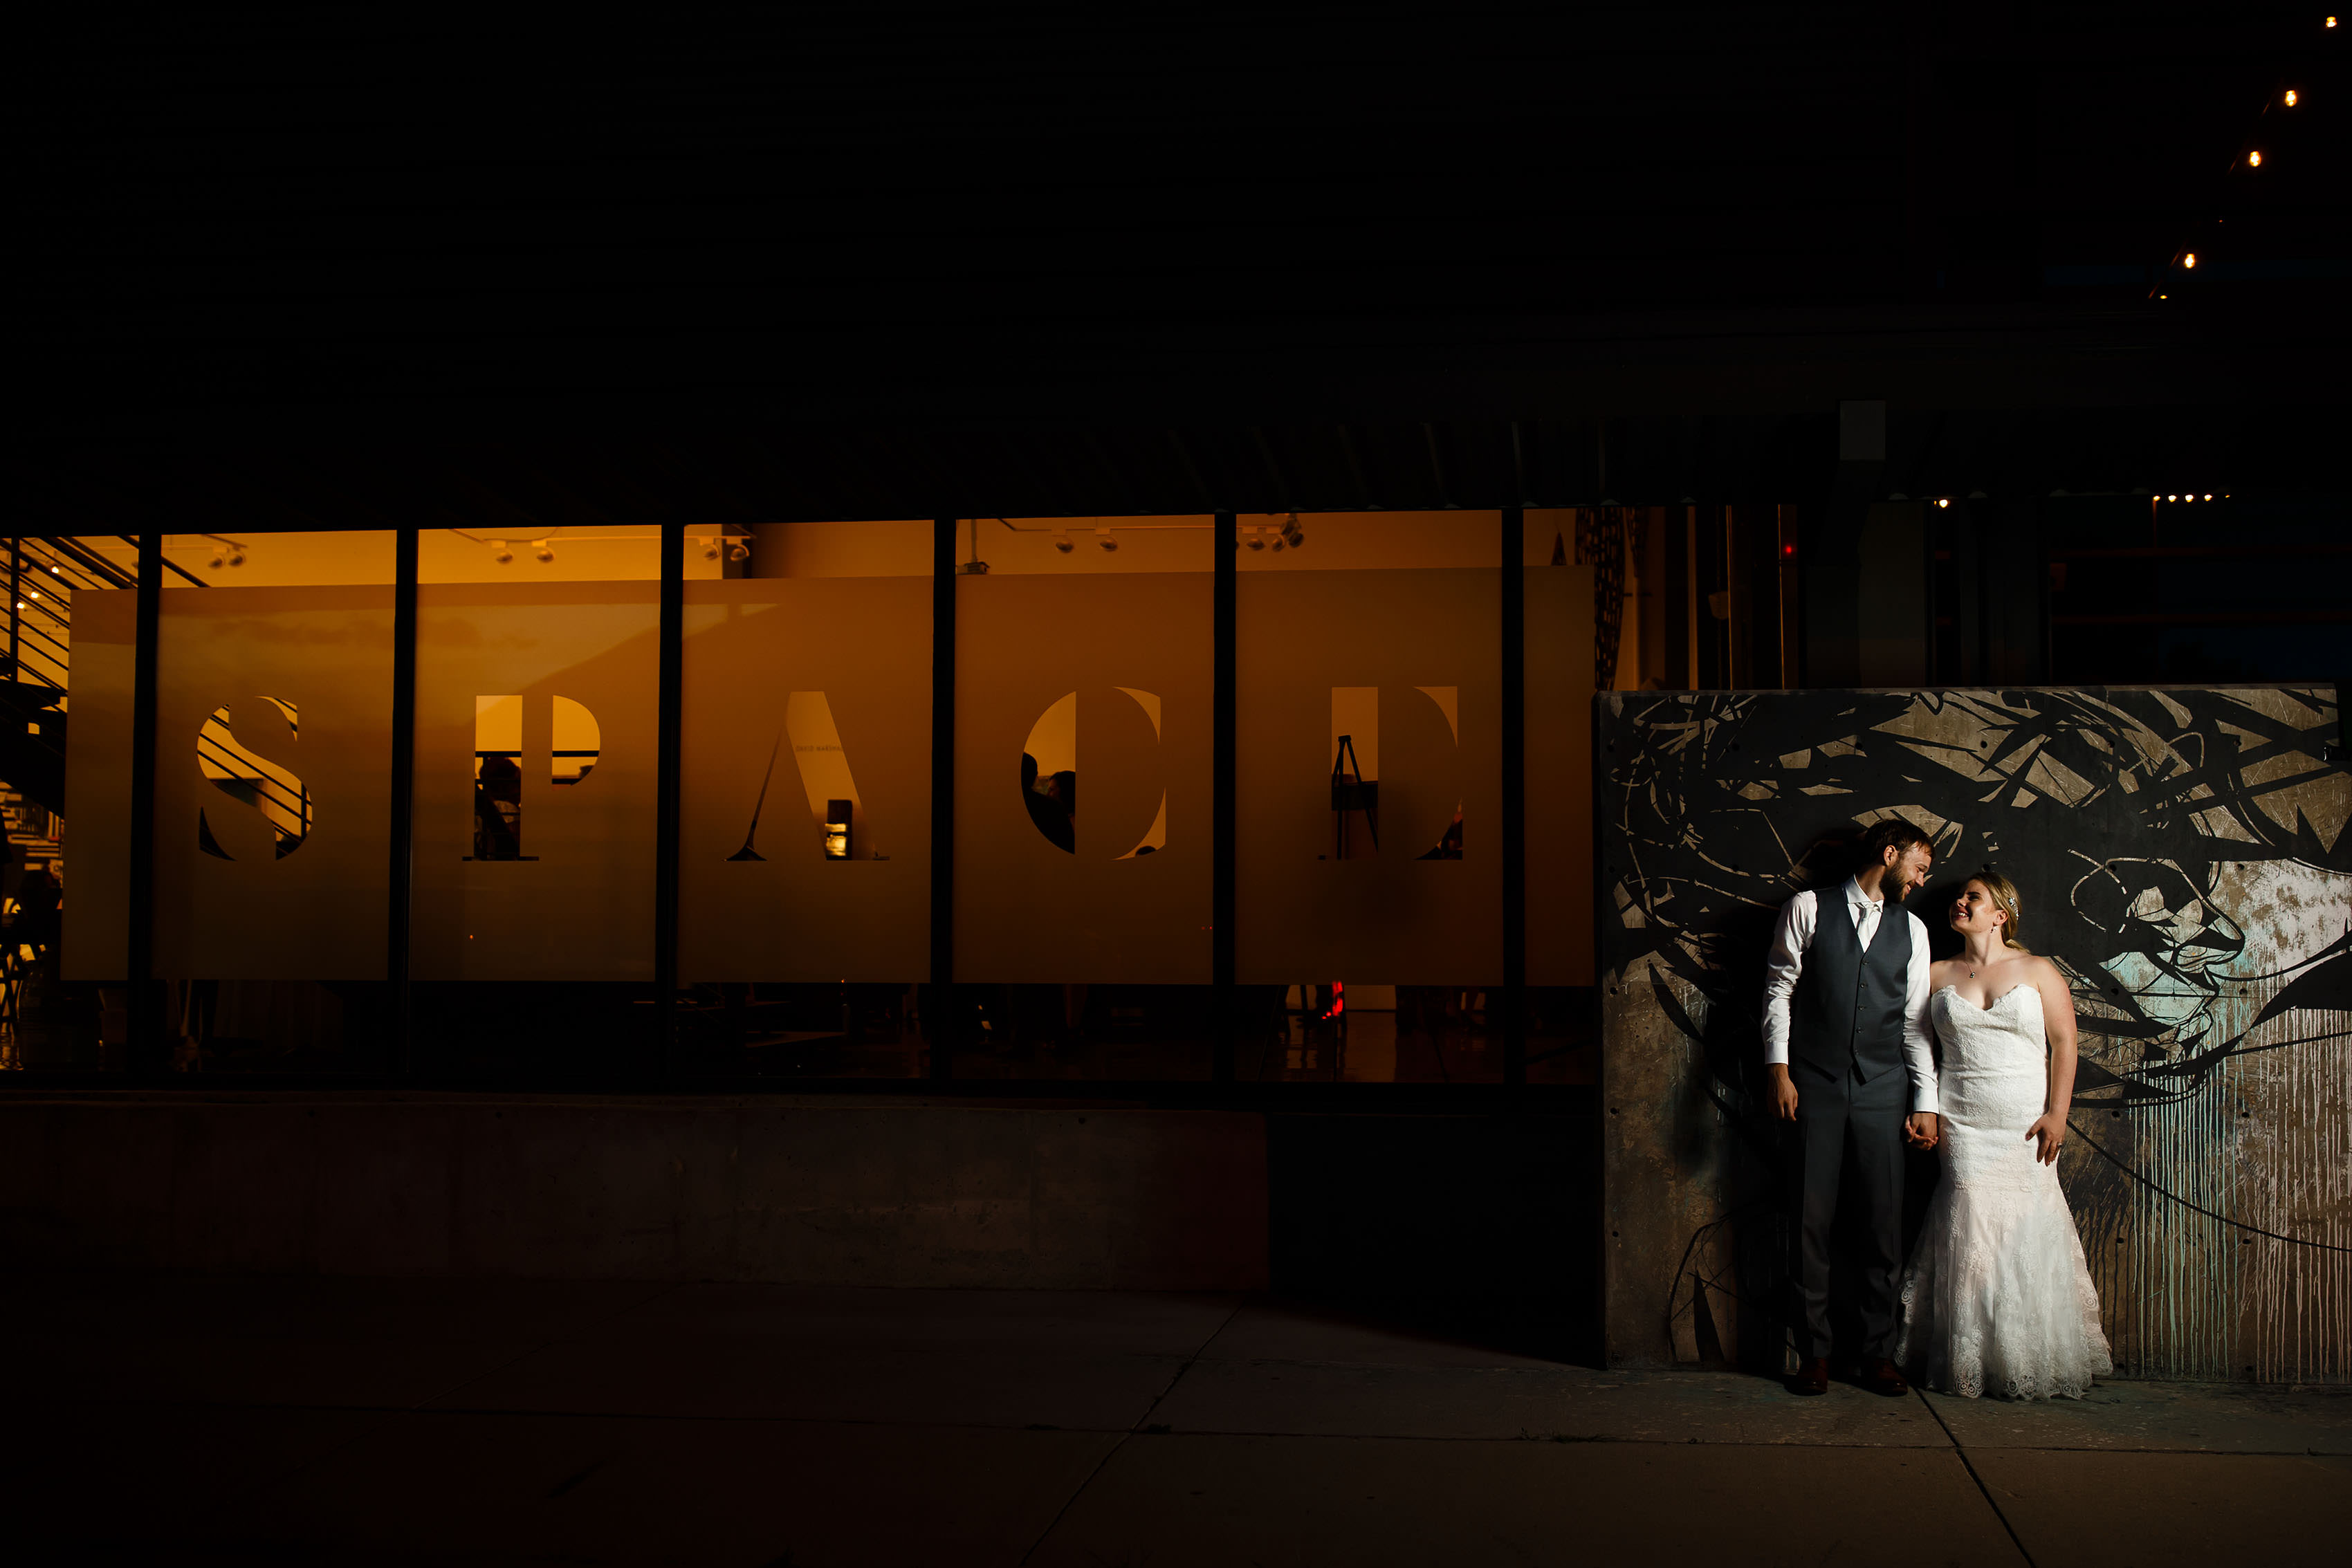 The couple pose outside Space Gallery on their wedding day